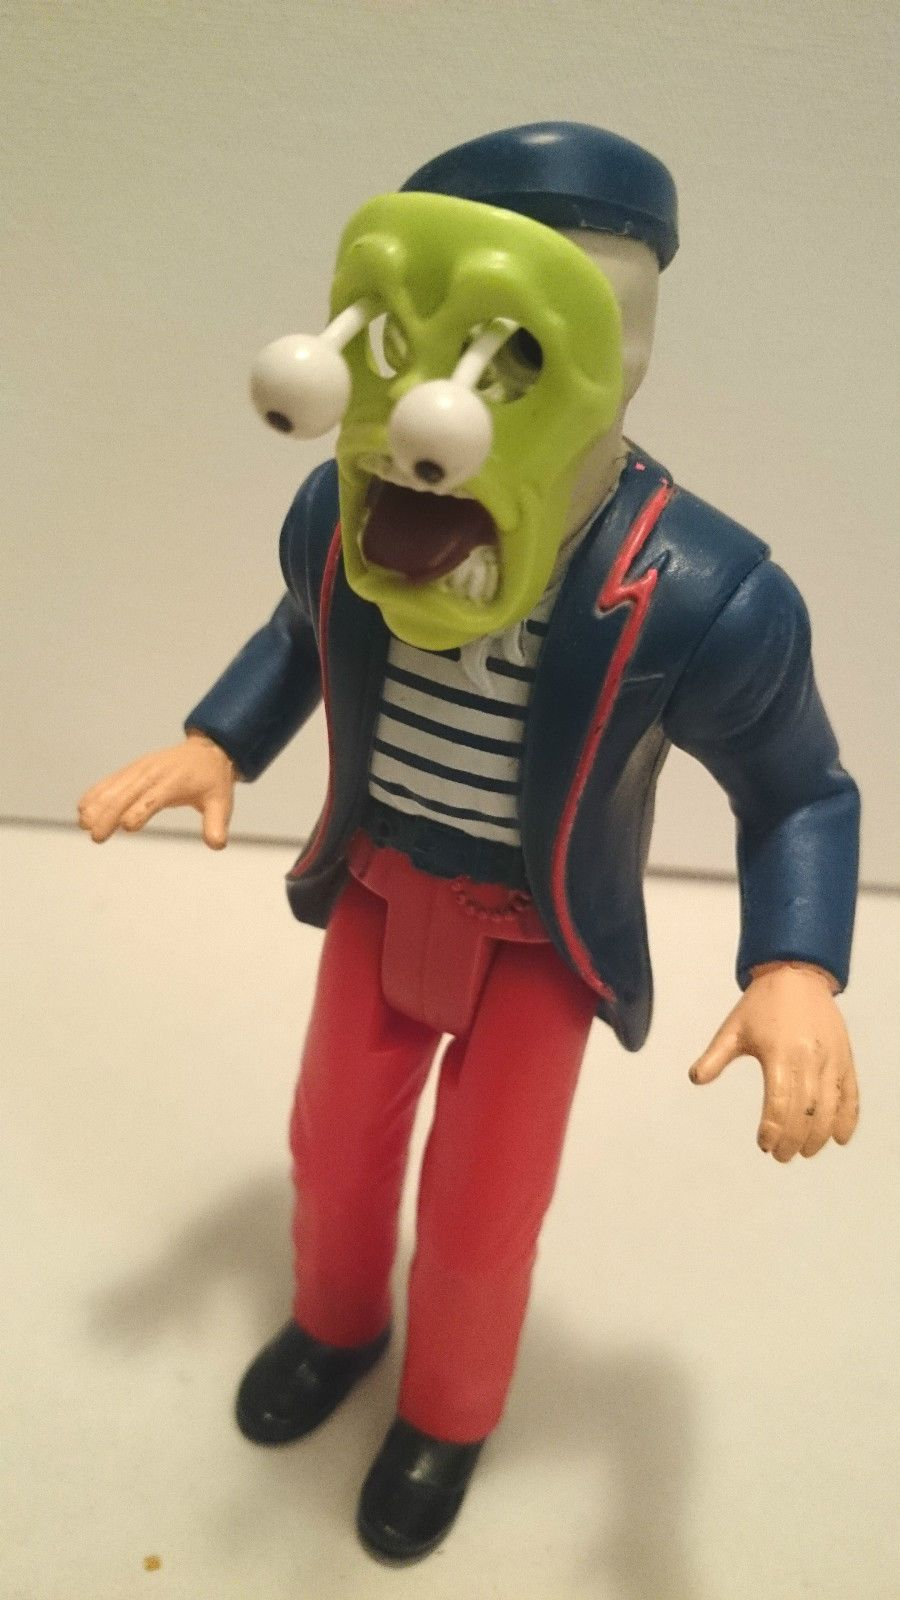 jim carrey the mask action figures | The Mask Toys & Collectibles ...